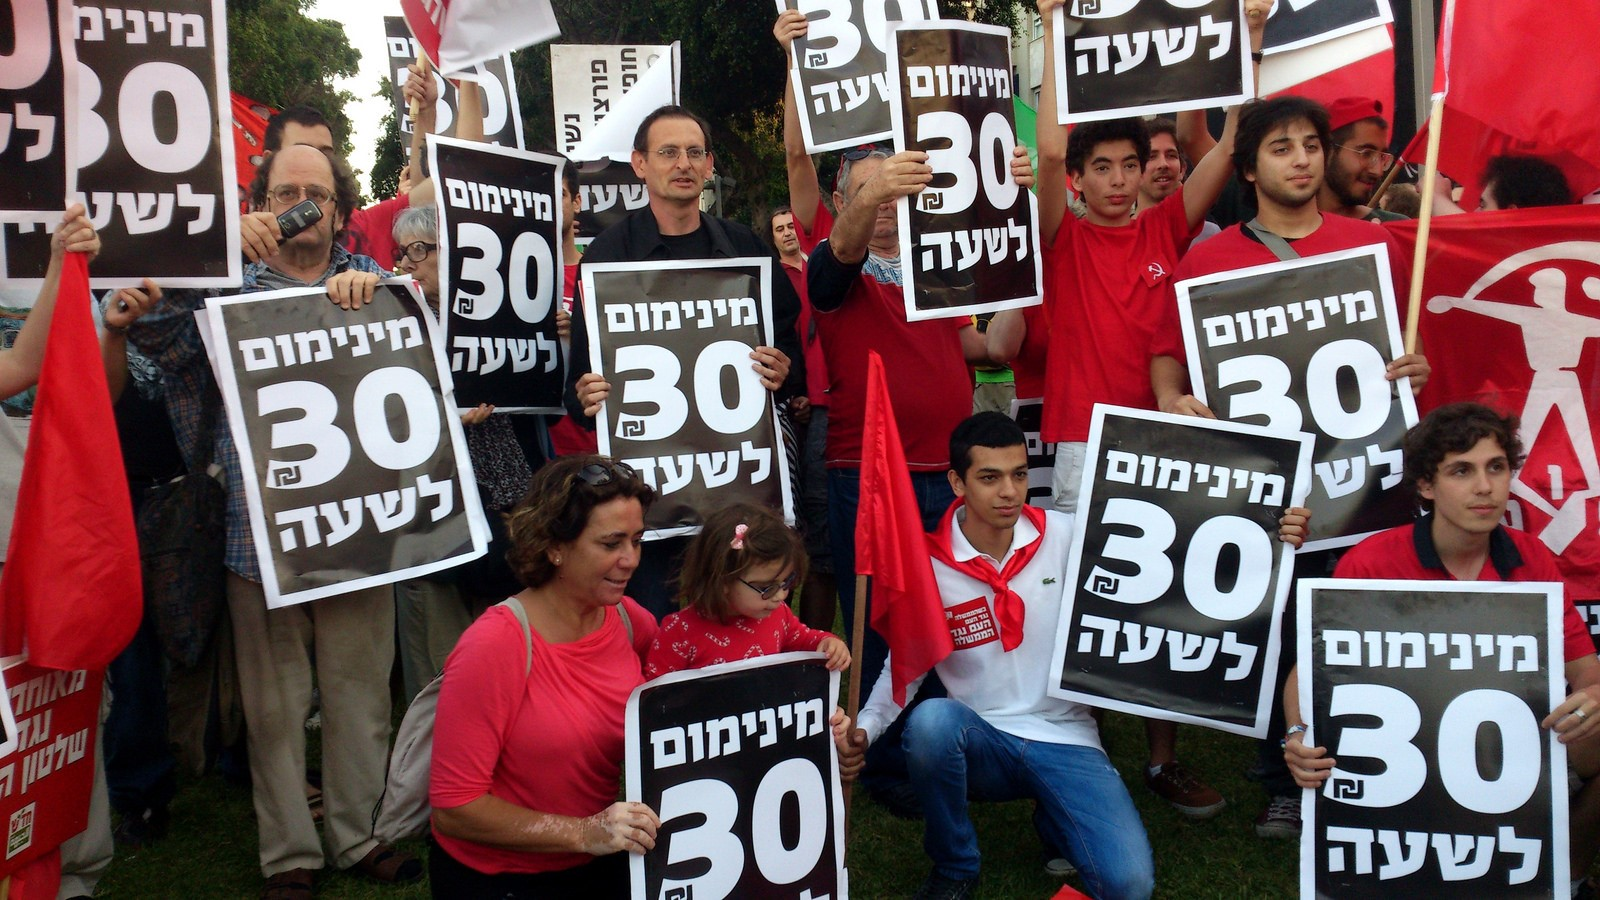 May Day 2014 in Tel-Aviv:  Raise the minimum wage to 30 shekels an hour (Photo: Galit)